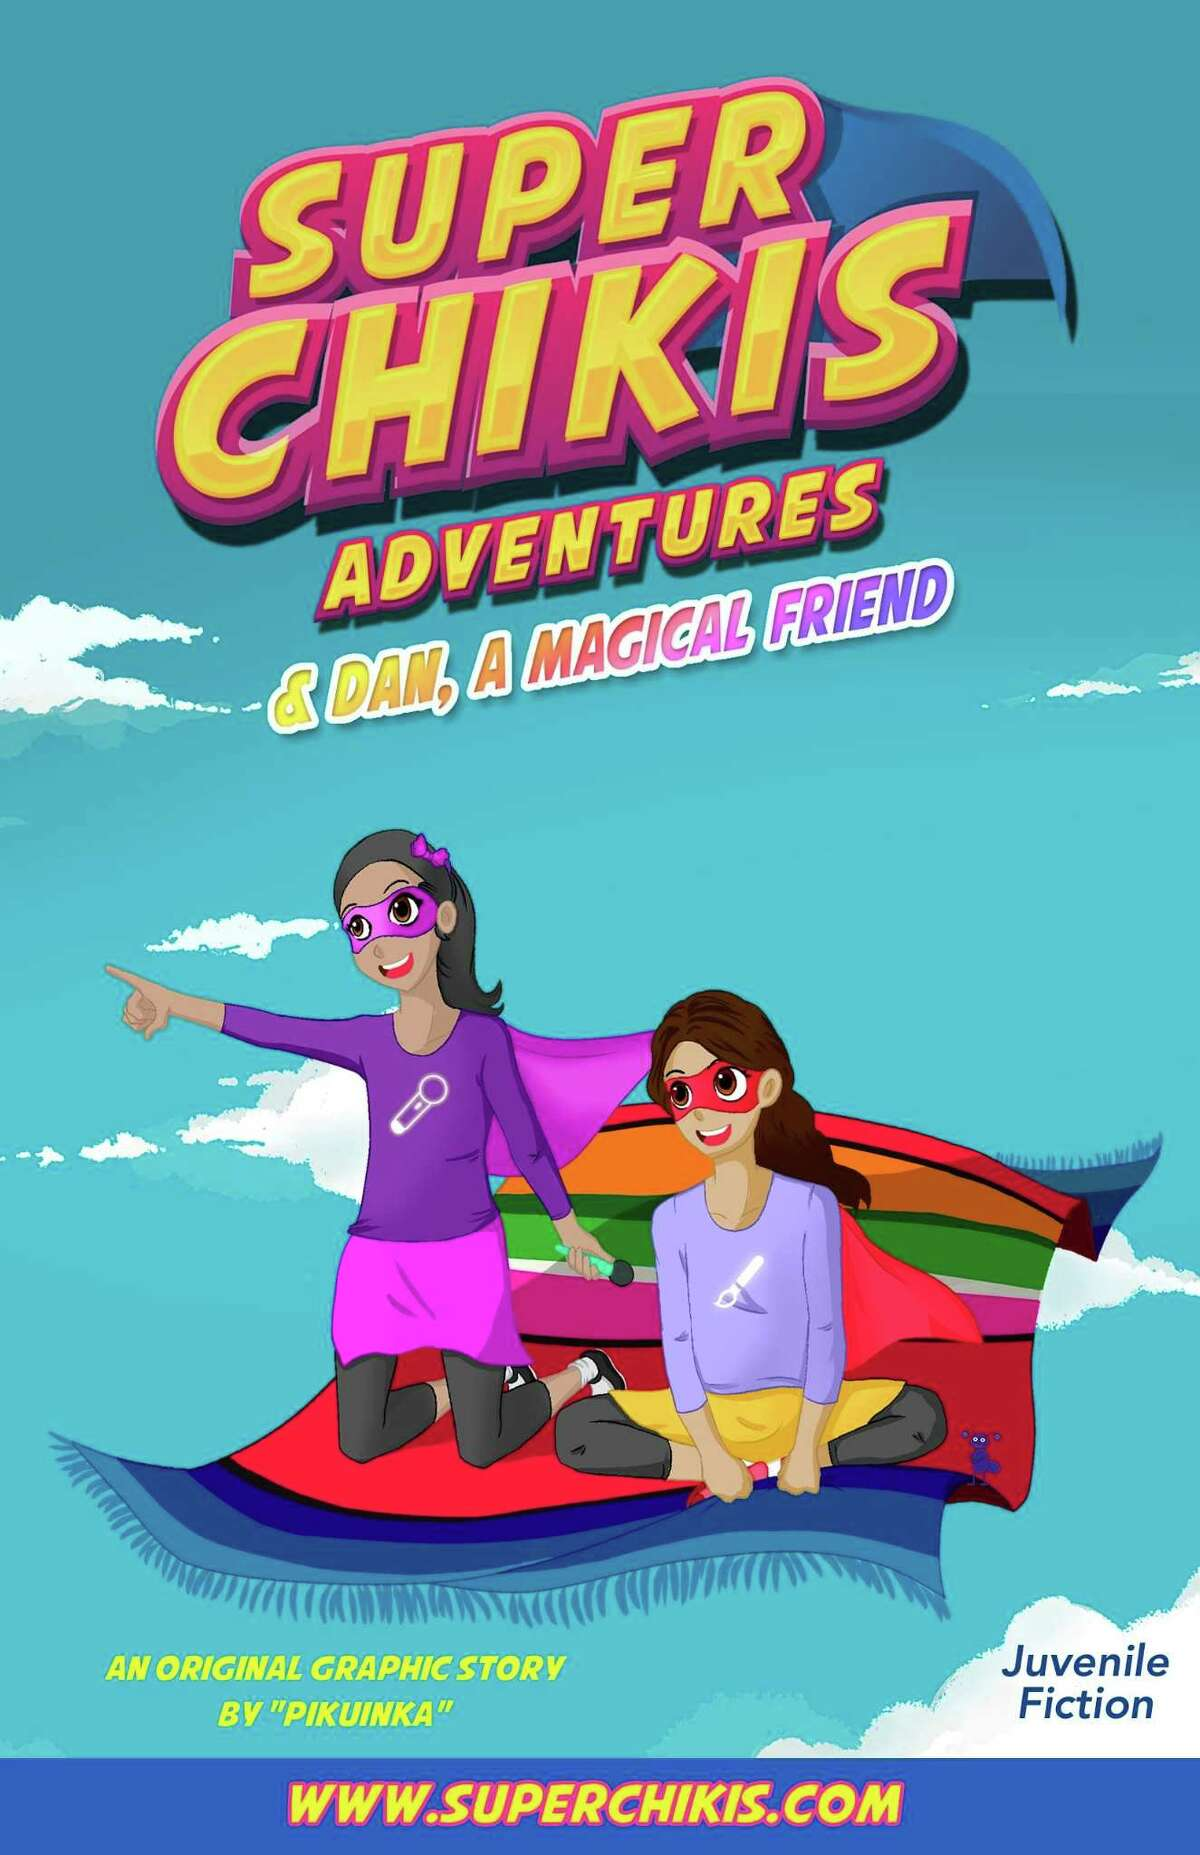 """The first issue of """"Super Chikis Adventures"""" introduces two of the Super Chikis. Super Chikis creator Luz Andrea Diaz based two of the characters on her own daughters, 9-year-old Johana Velazquez and 7-year-old Angela Velazquez"""